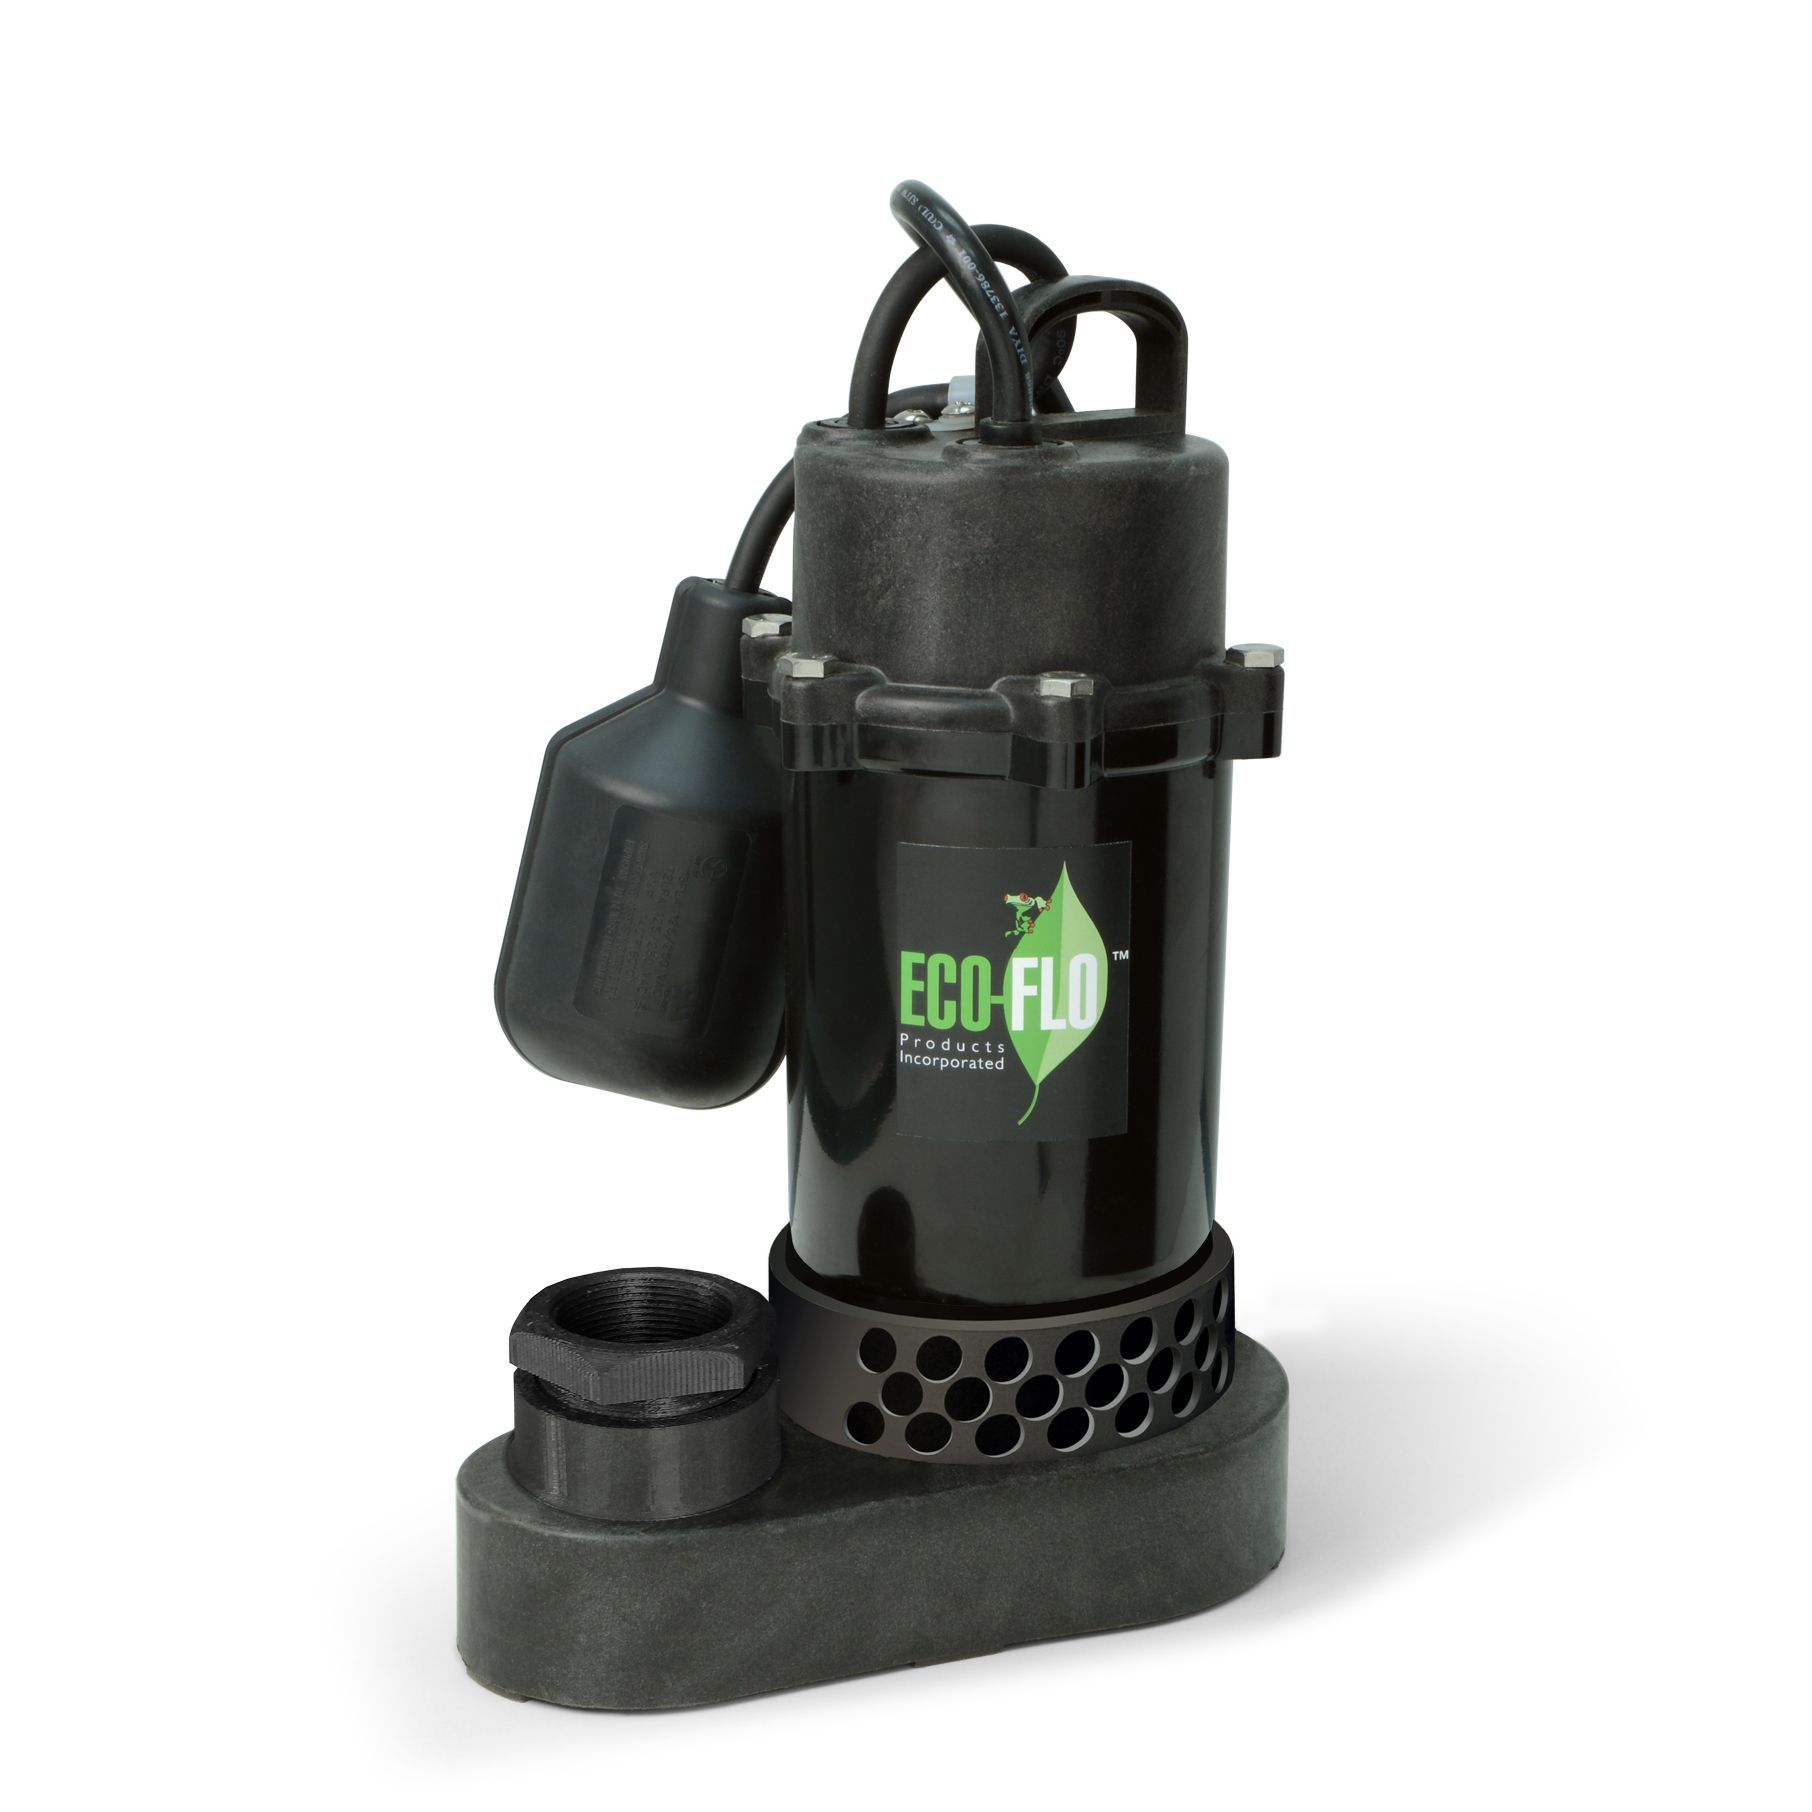 ECO-FLO SPP25W Thermo 1/4 HP Sump Pump with Wide Angle Switch